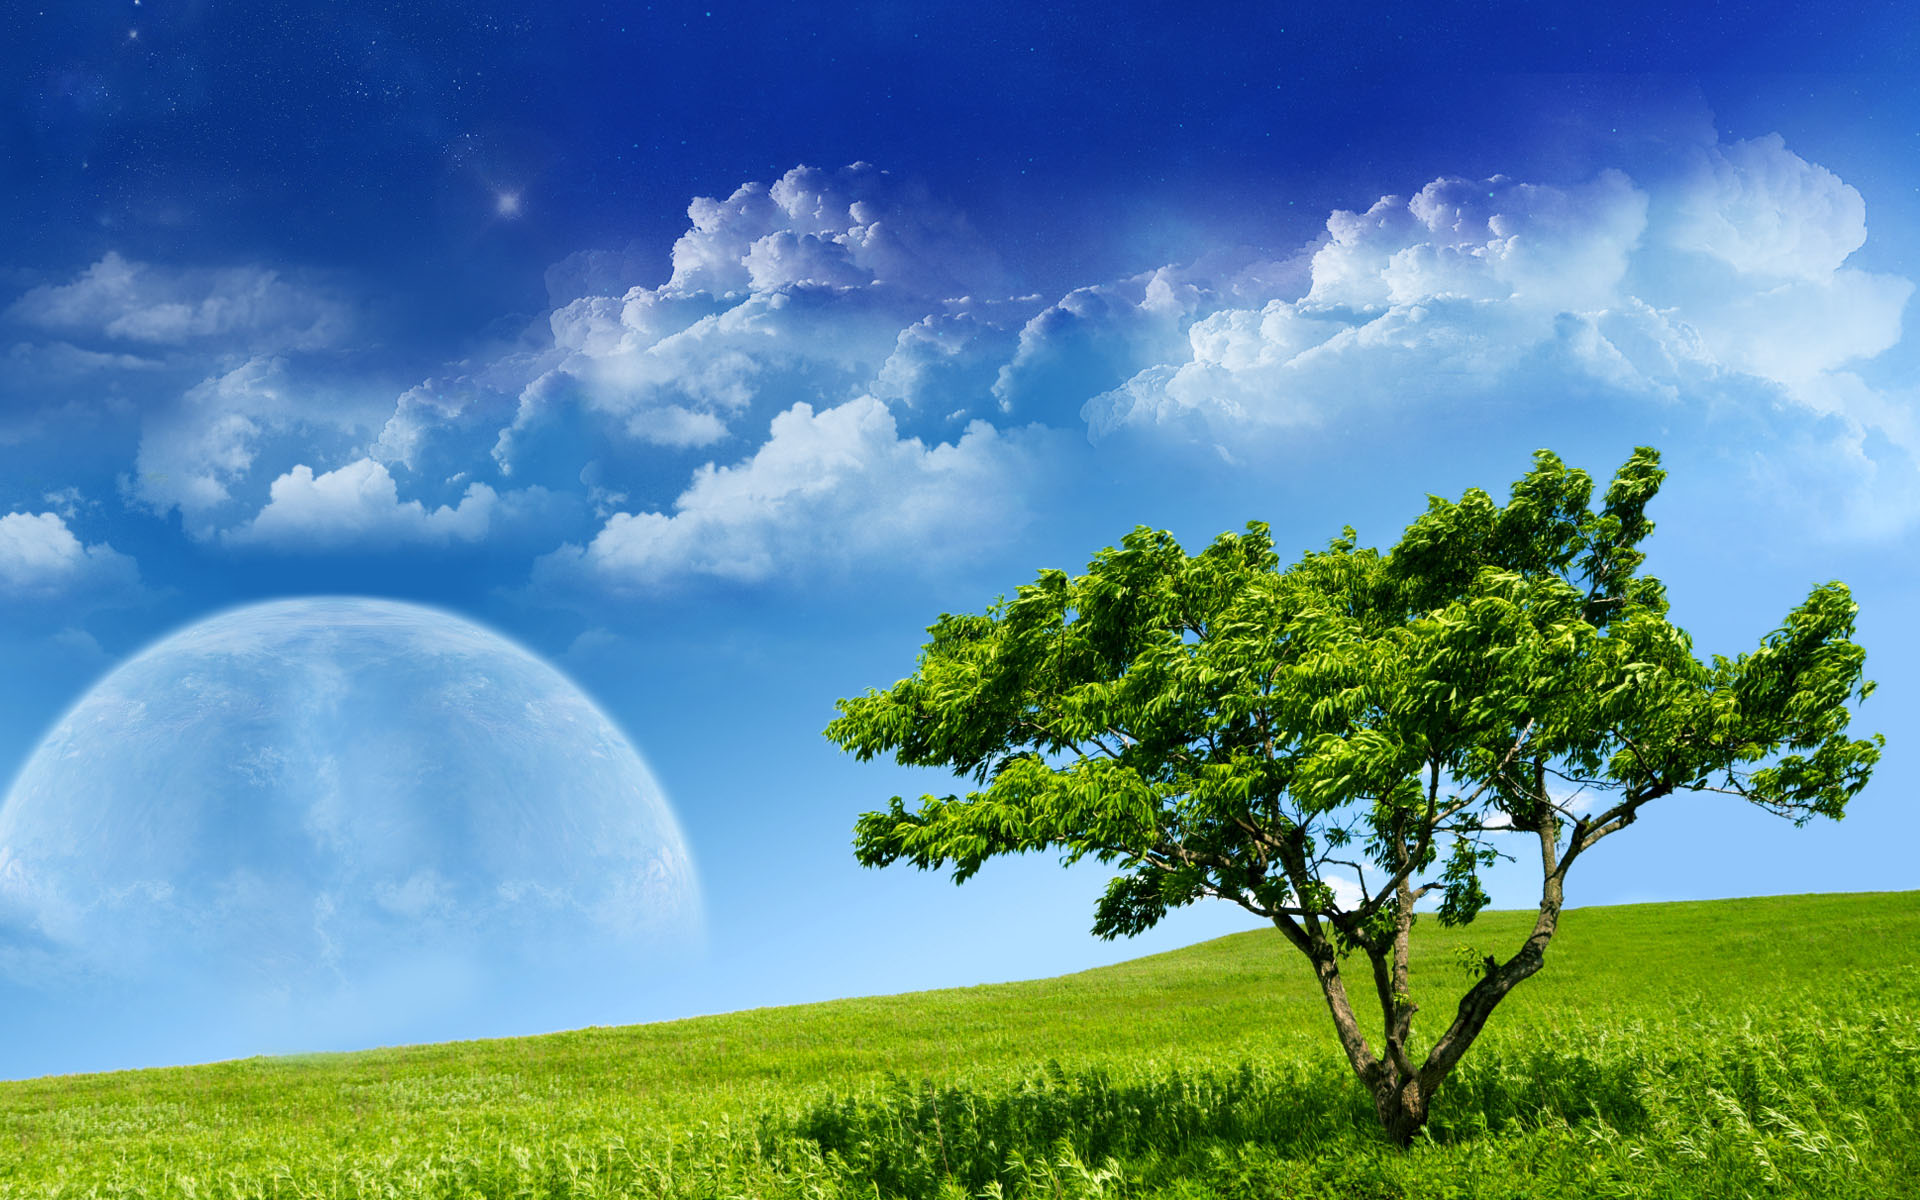 Beautiful Sky Moon in Spring Wallpaper   Beautiful Sky Moon in Spring 1920x1200